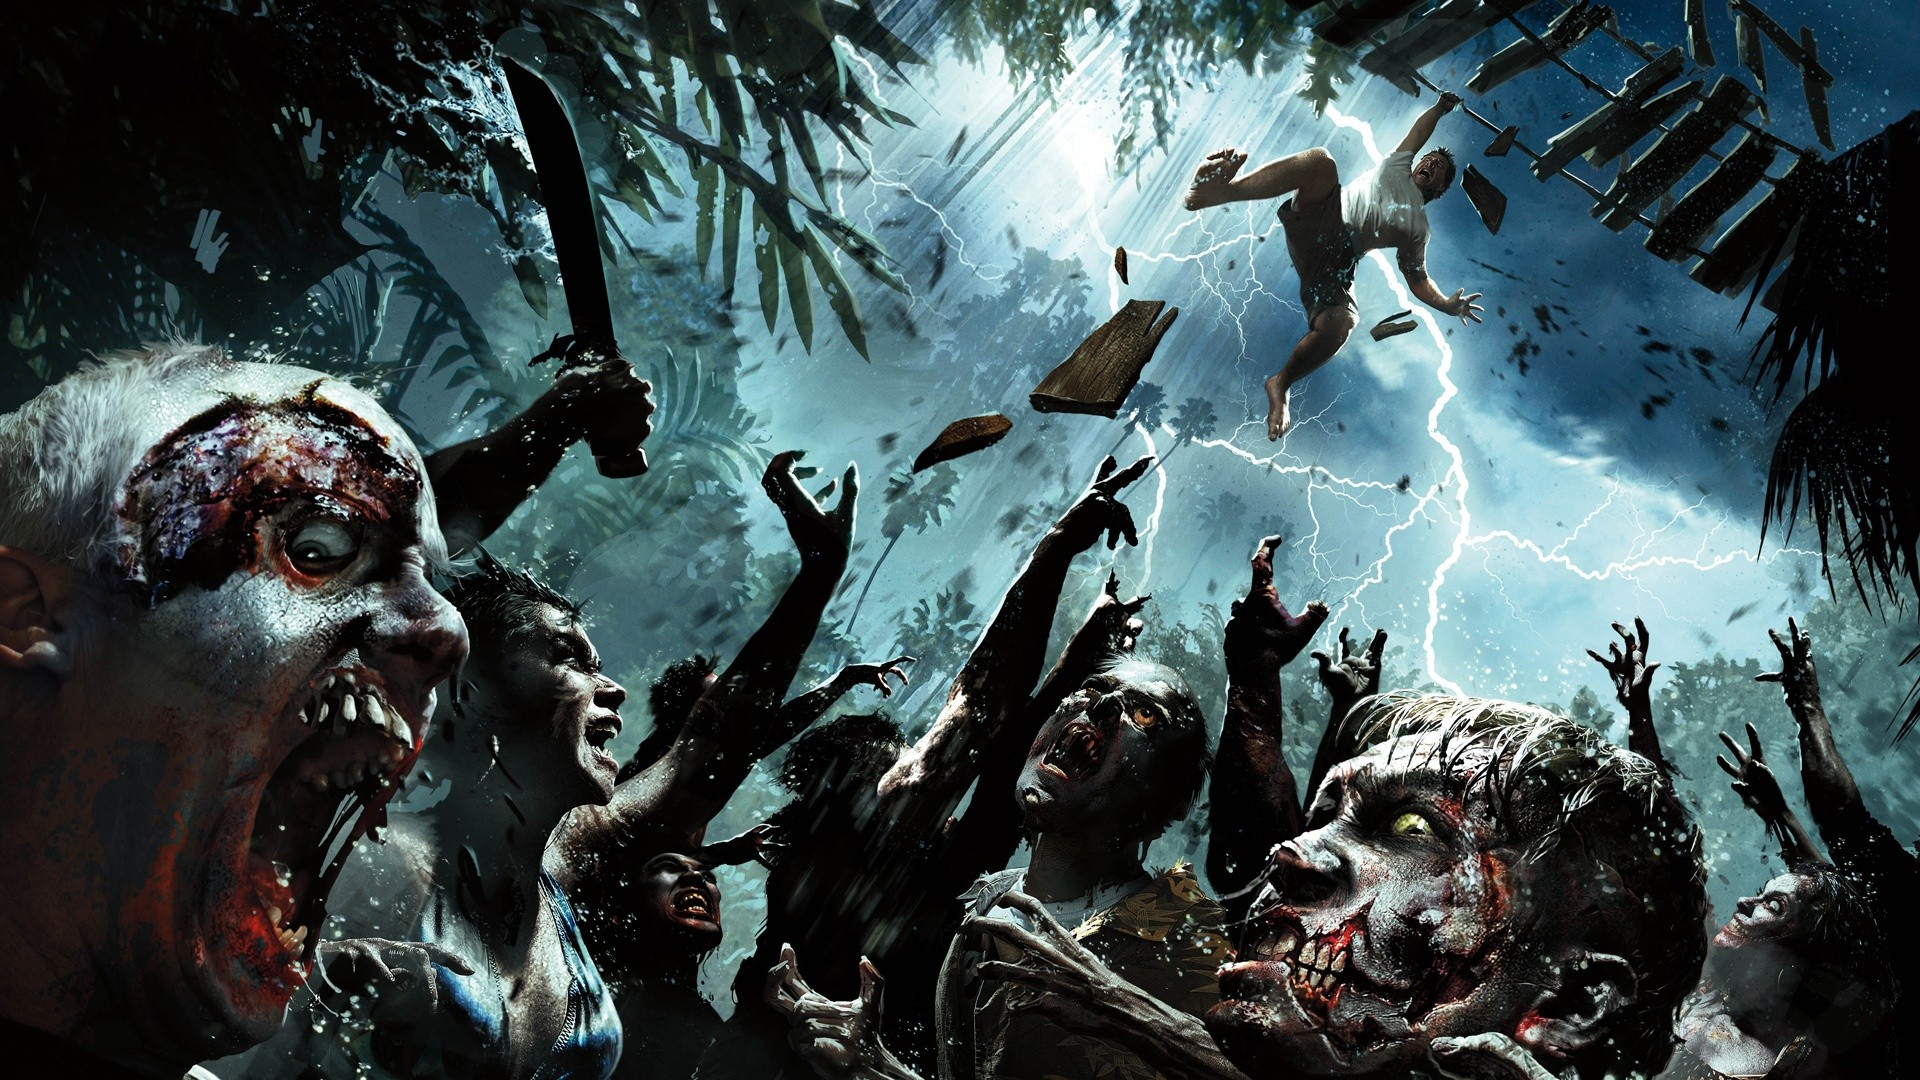 zombie horde wallpaper hd  Google Search  Zombies and monsters 1920x1080